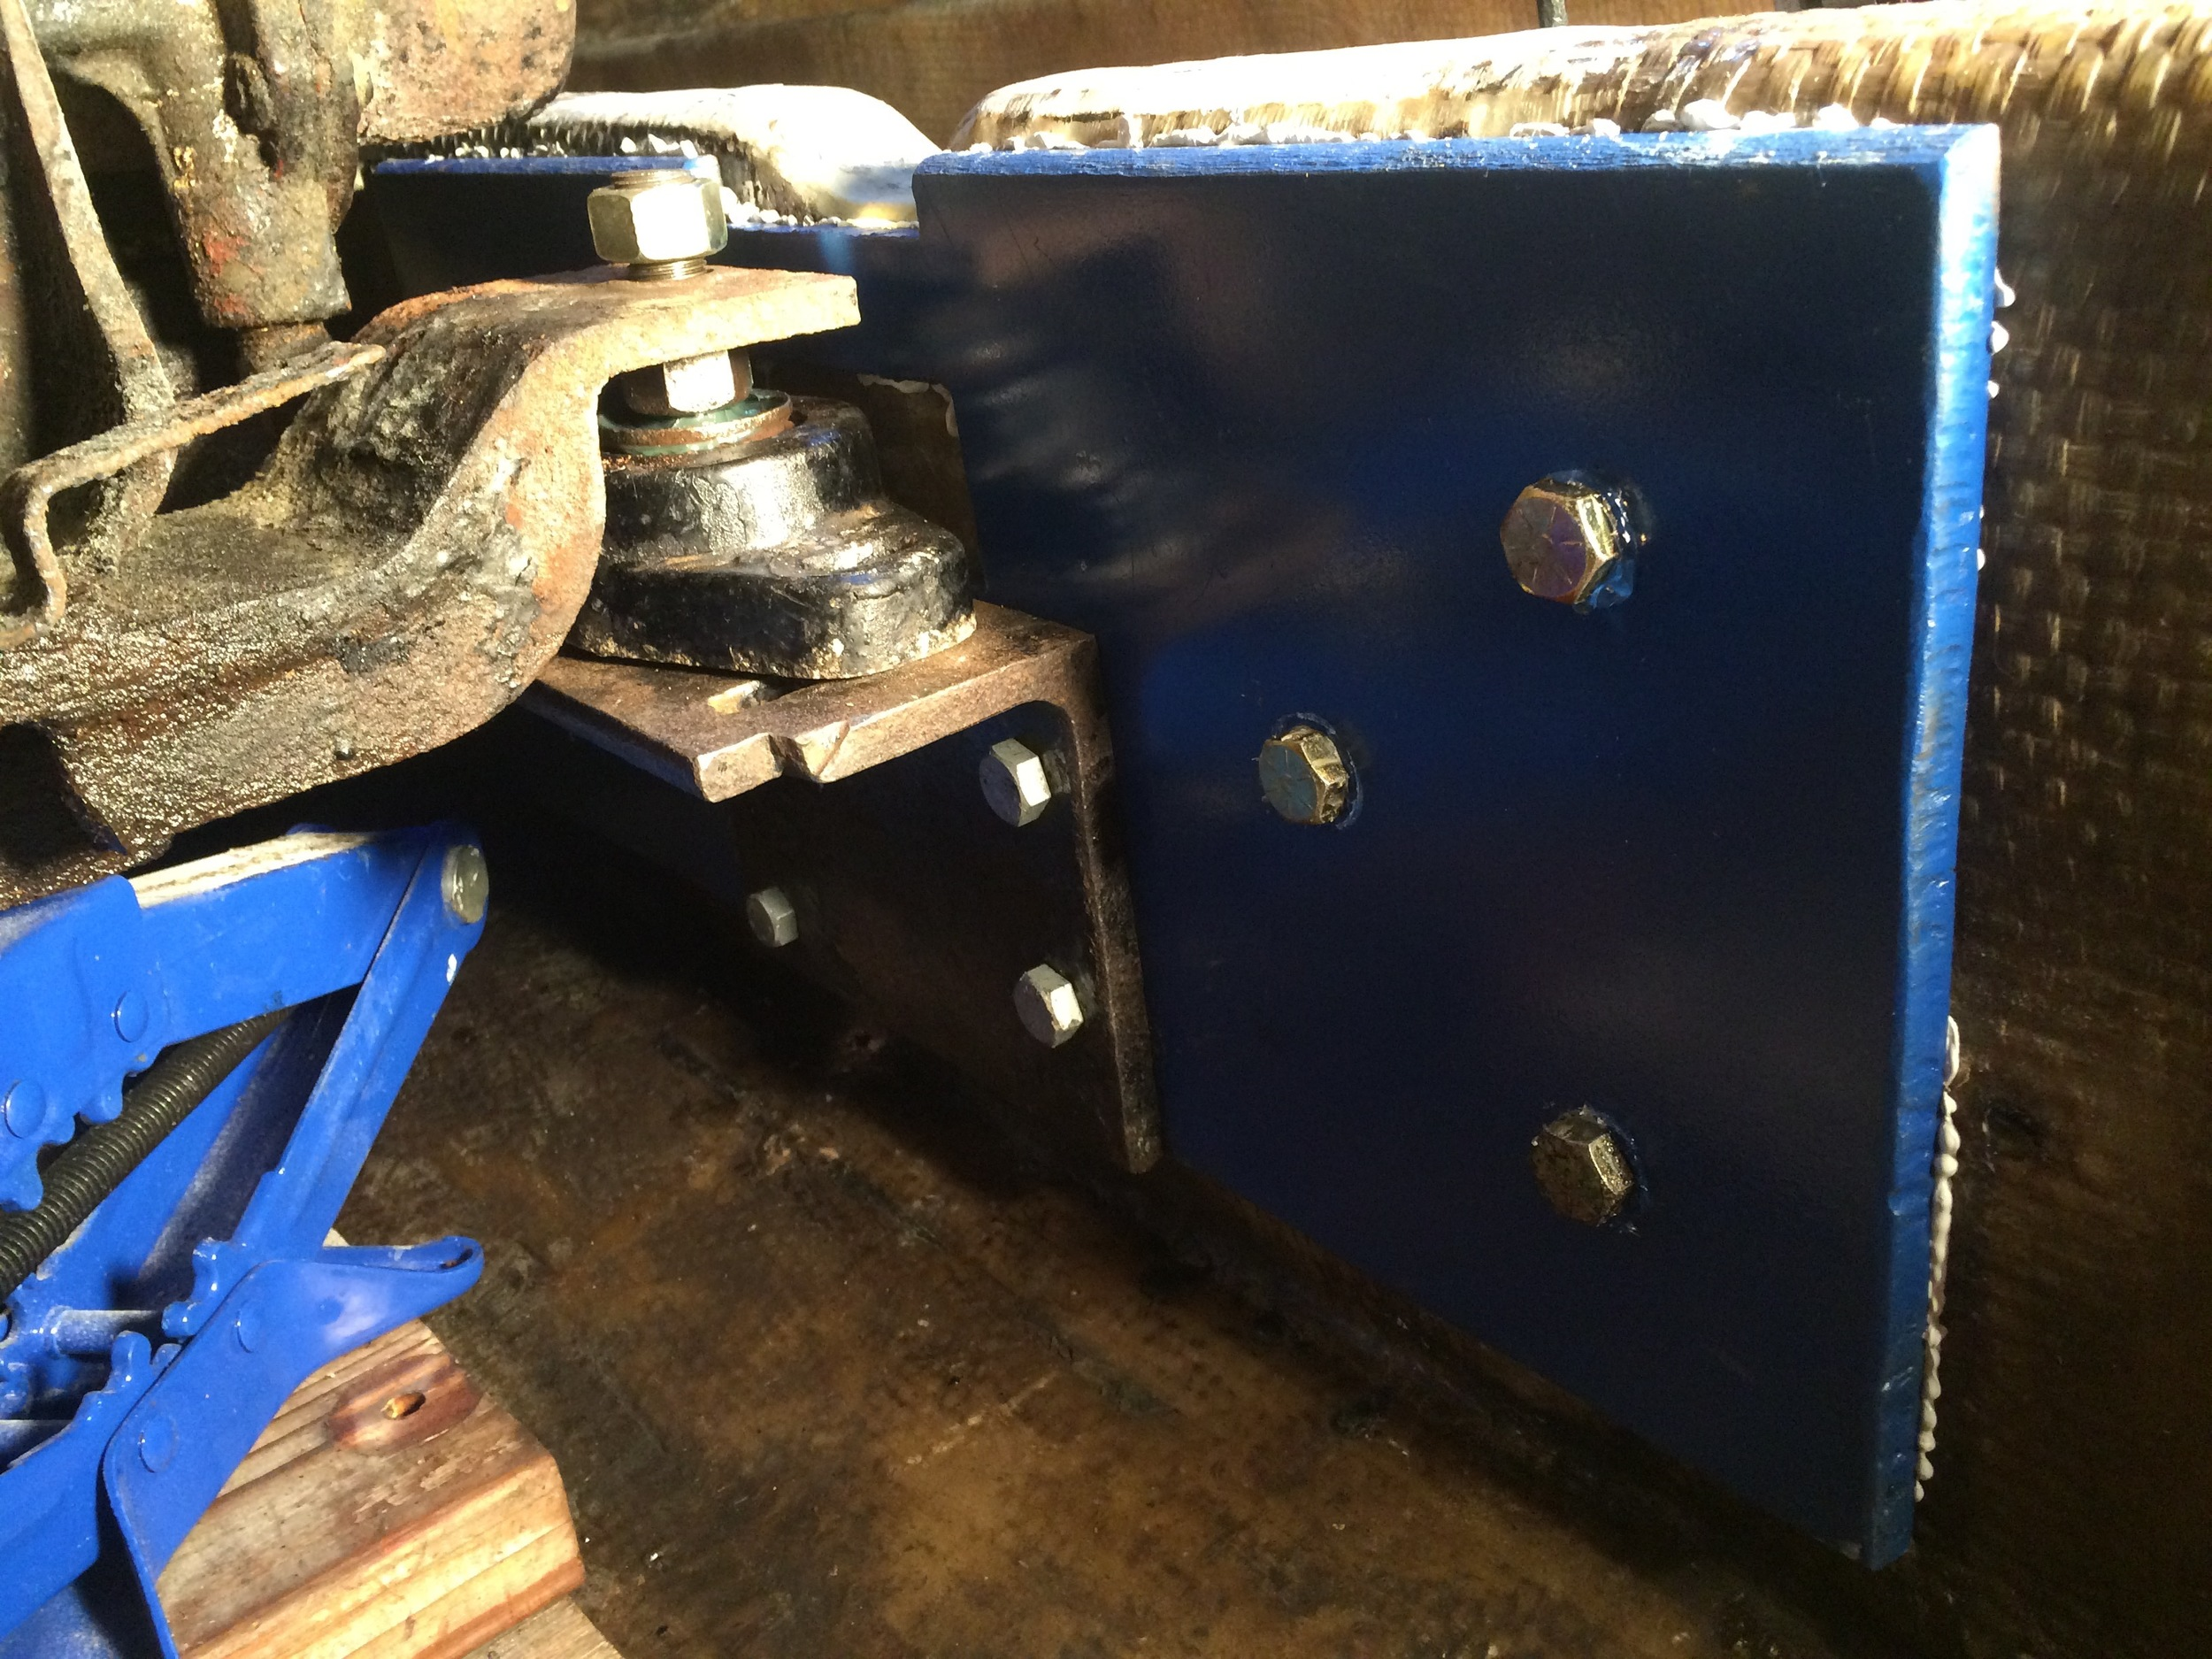 engine mount and steel plates reattached to fiberglass stringer